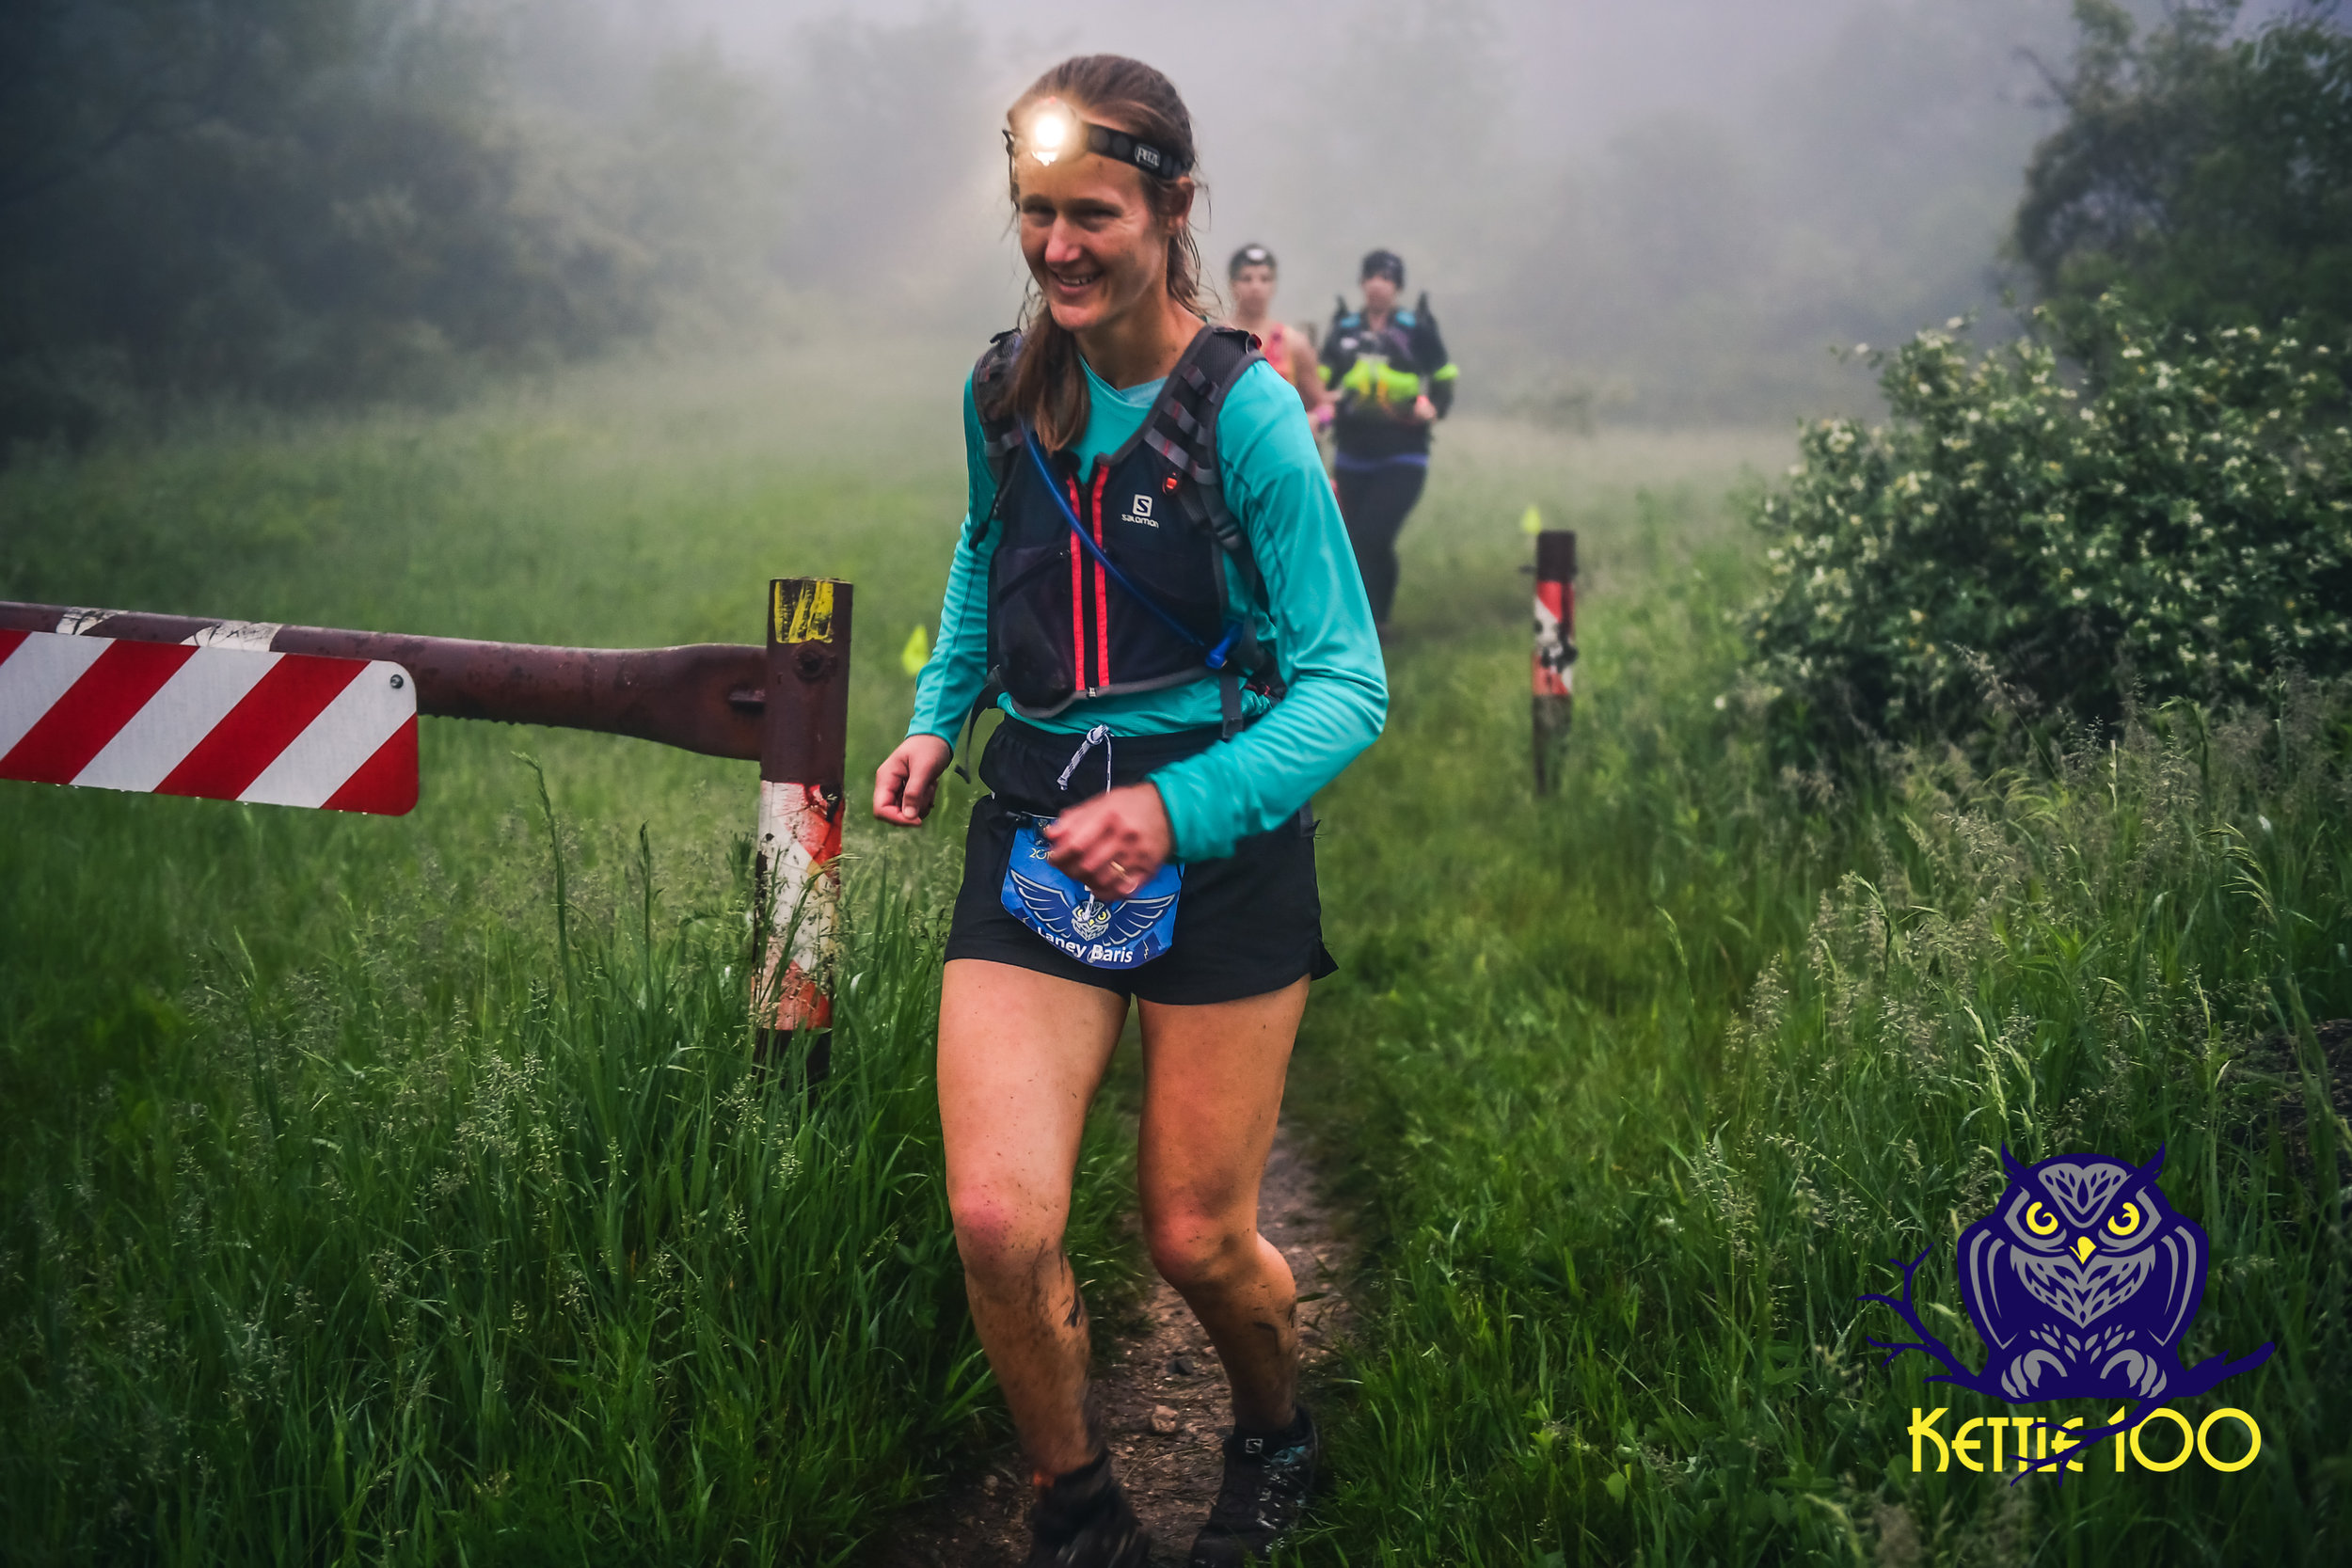 Laney Baris- 100 mile finisher from New Jersey. Finish time: 28:08:57